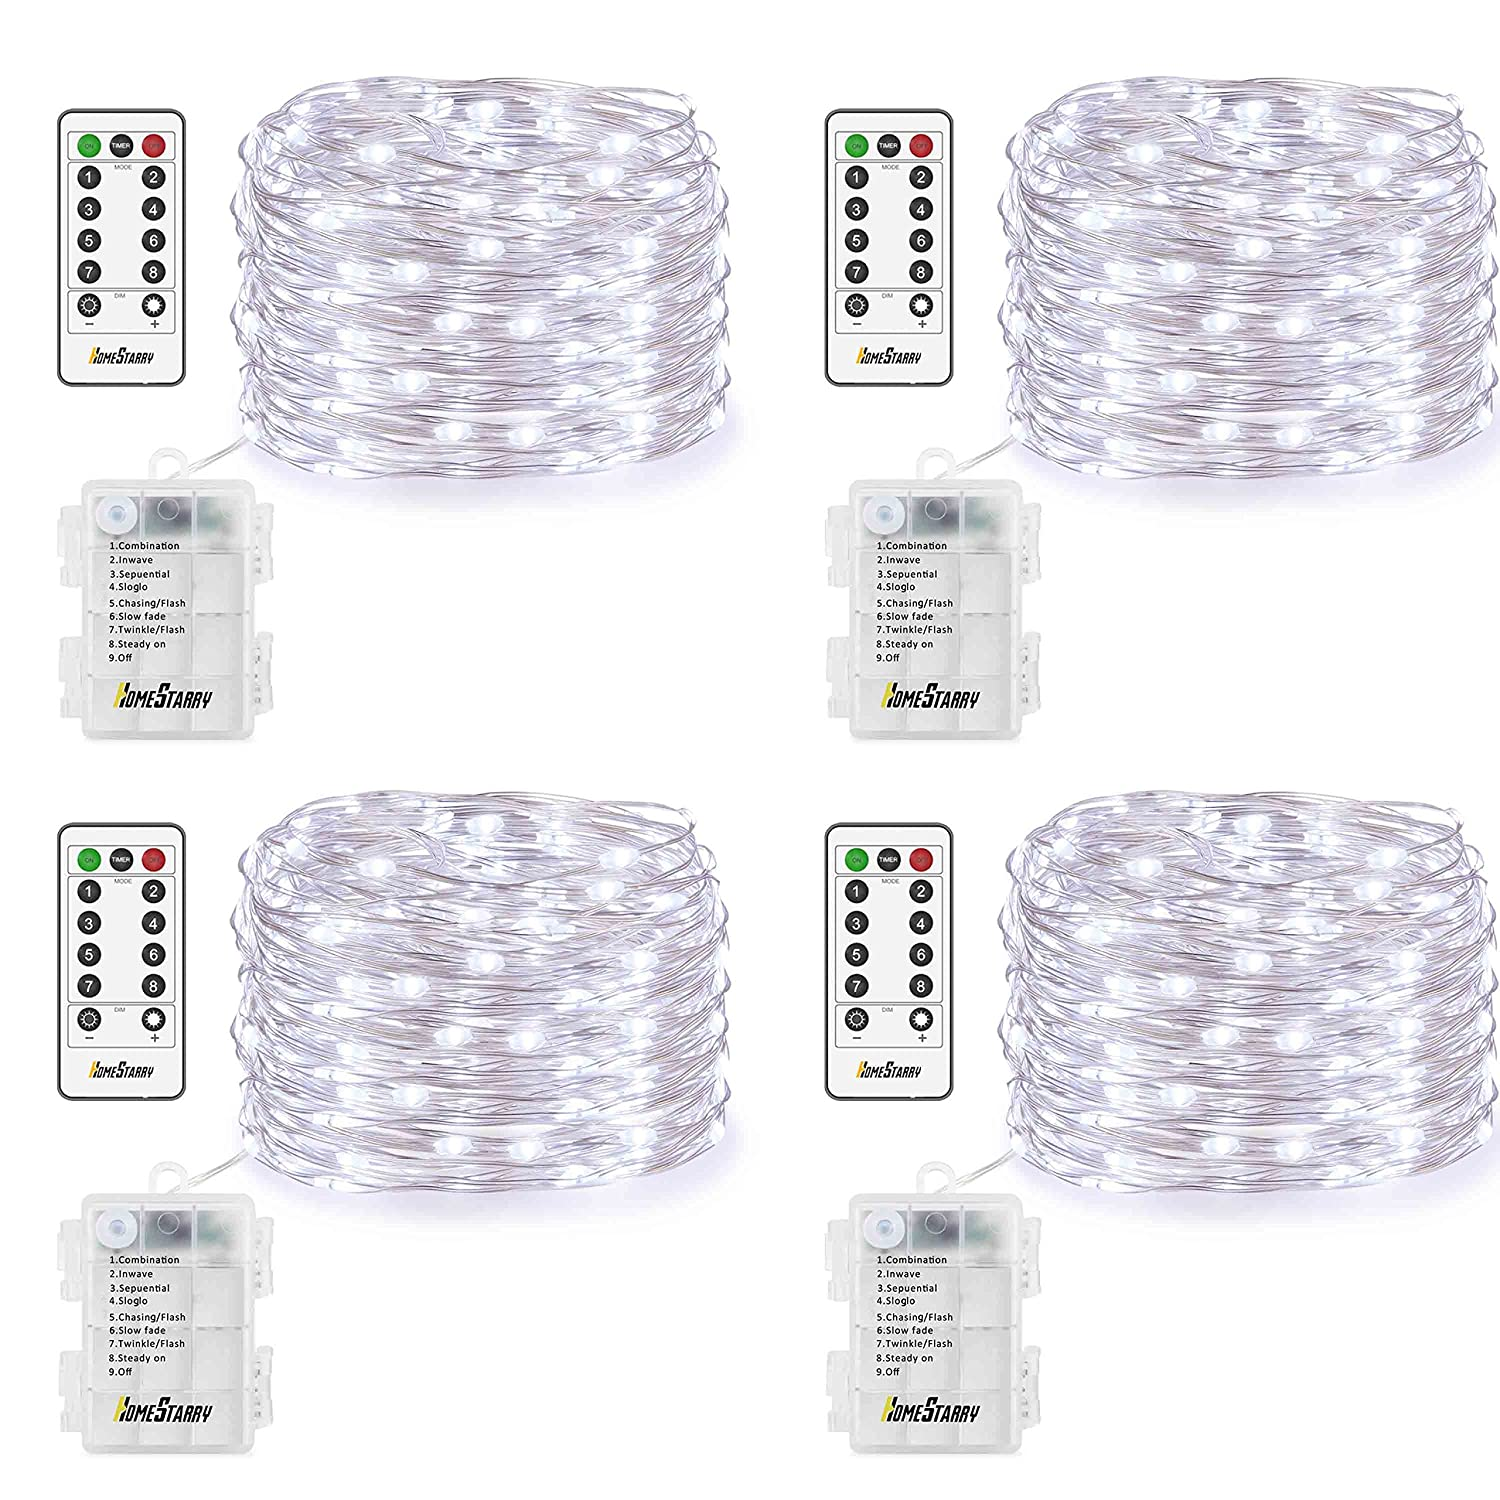 4 Pack Fairy Lights Fairy String Lights Battery Operated Waterproof 8 Modes Remote Control 50 Led String Lights 16.4ft Silver Wire Firefly lights for Bedroom Wedding Festival Decor (Cool White) ¡­